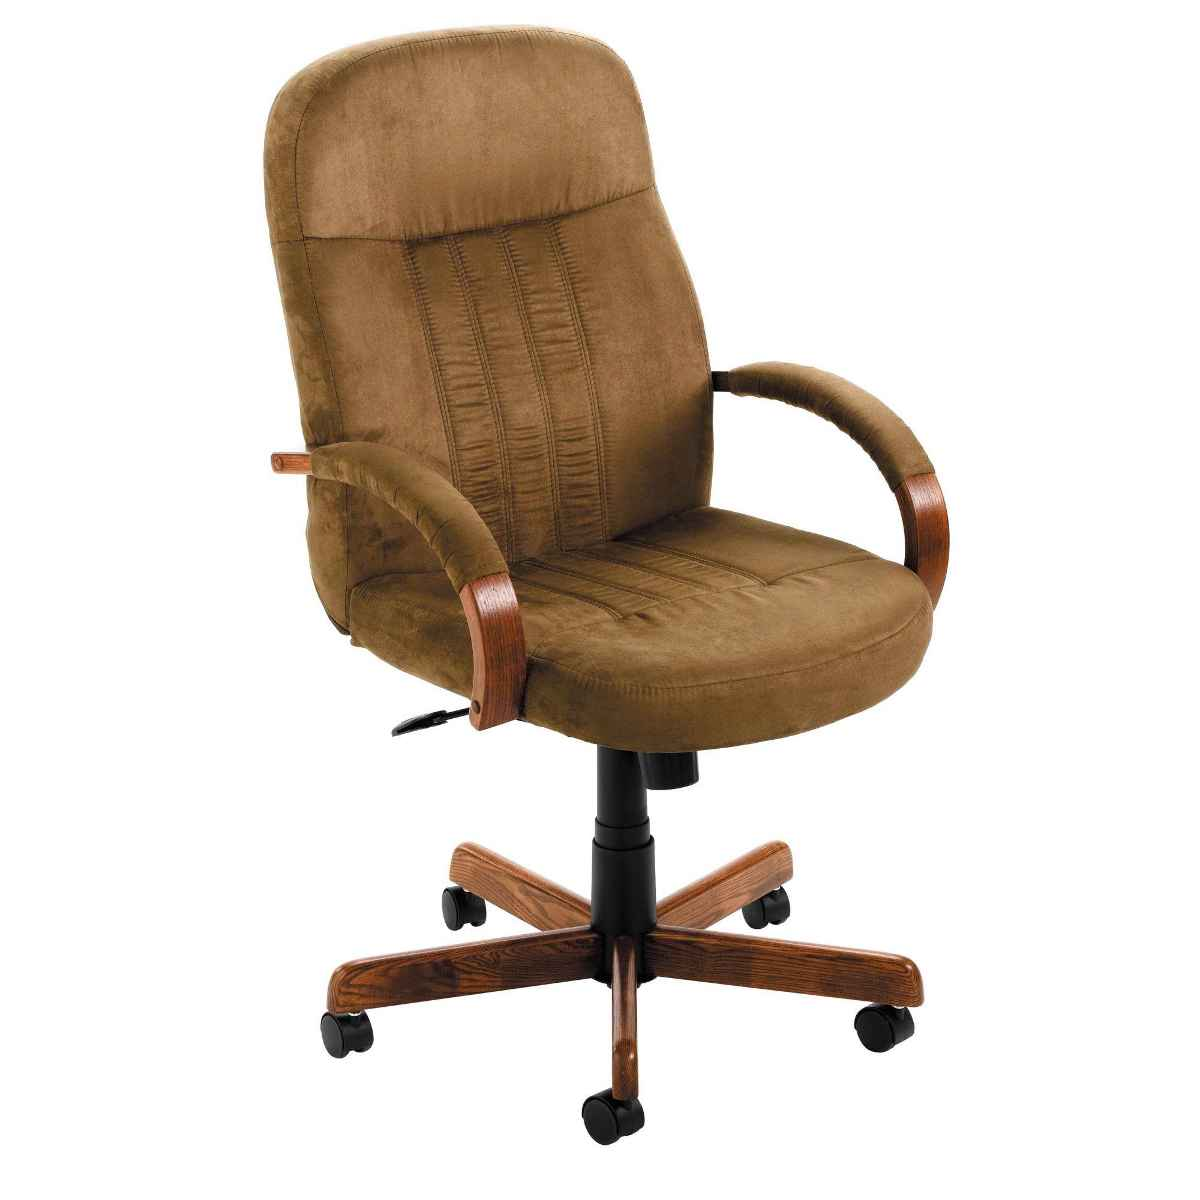 Boss High Back Microfiber Office Chair for Executive